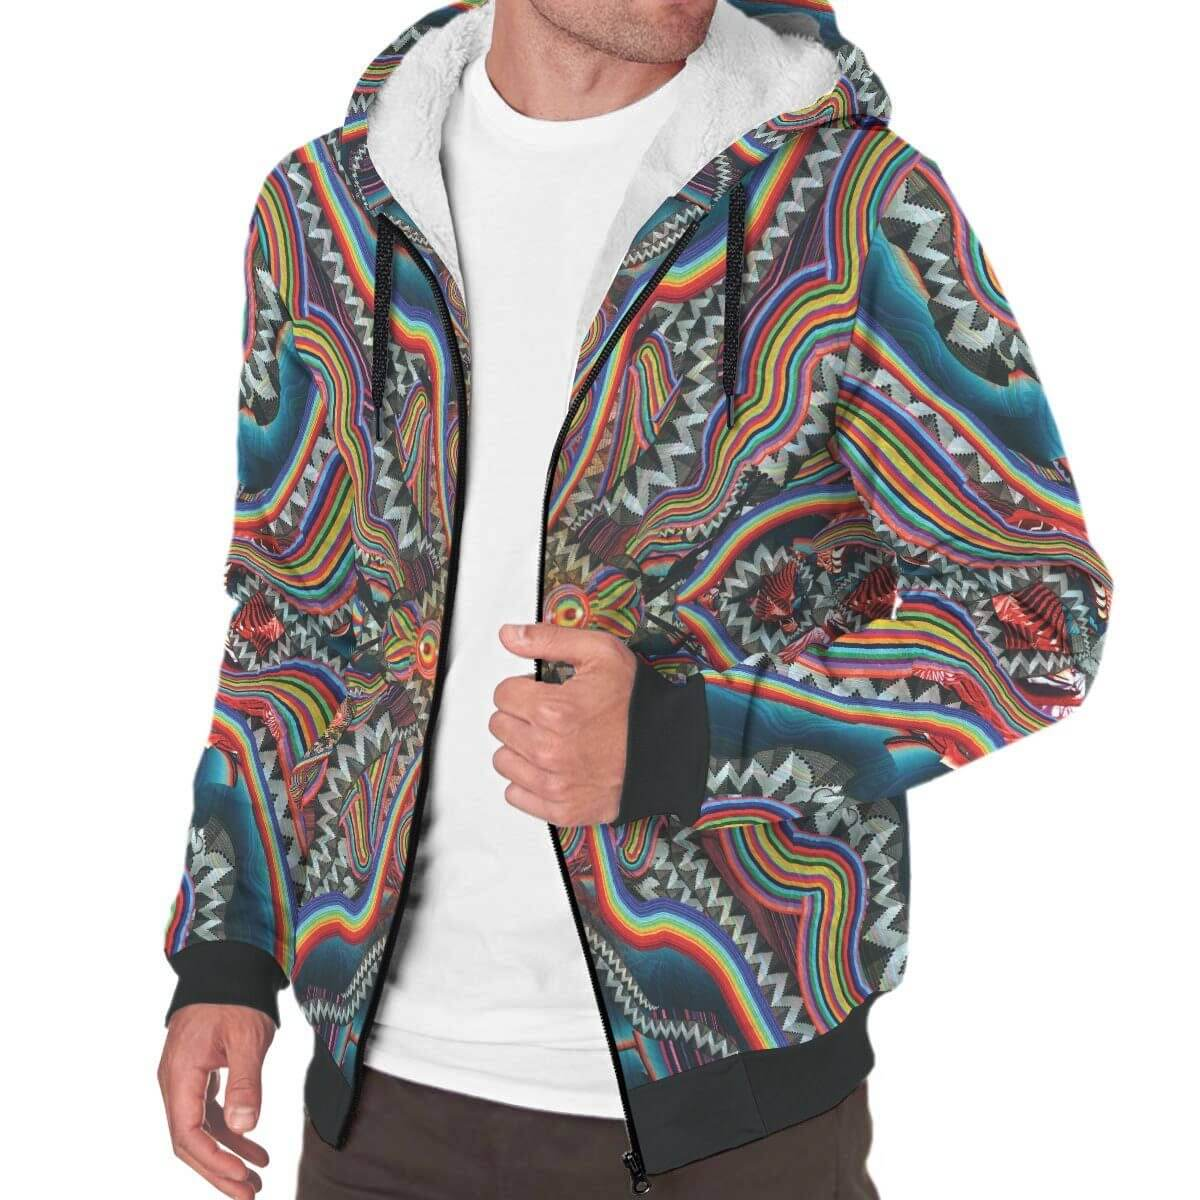 Inner Art World Colorful Sherpa Hoodie Designs by Visionary Artists